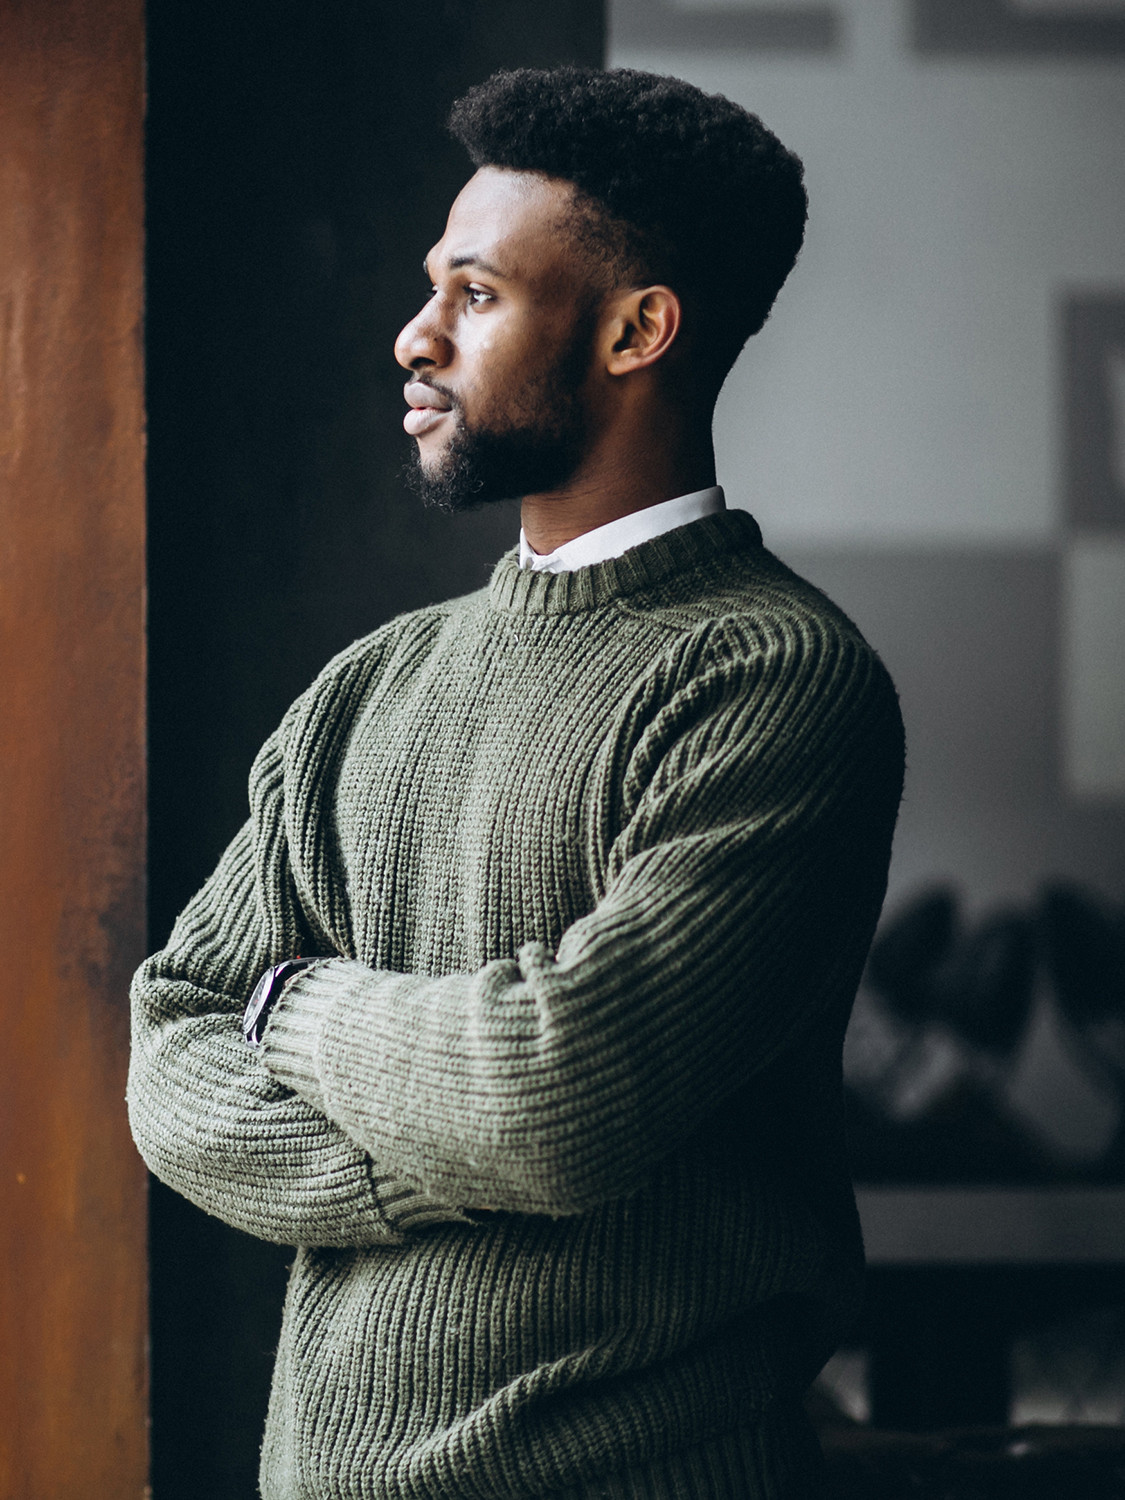 Men's outfit idea for 2021 with green plain crew neck knitted sweater, white casual shirt, navy chinos, oxford / derby shoes. Suitable for fall and winter.